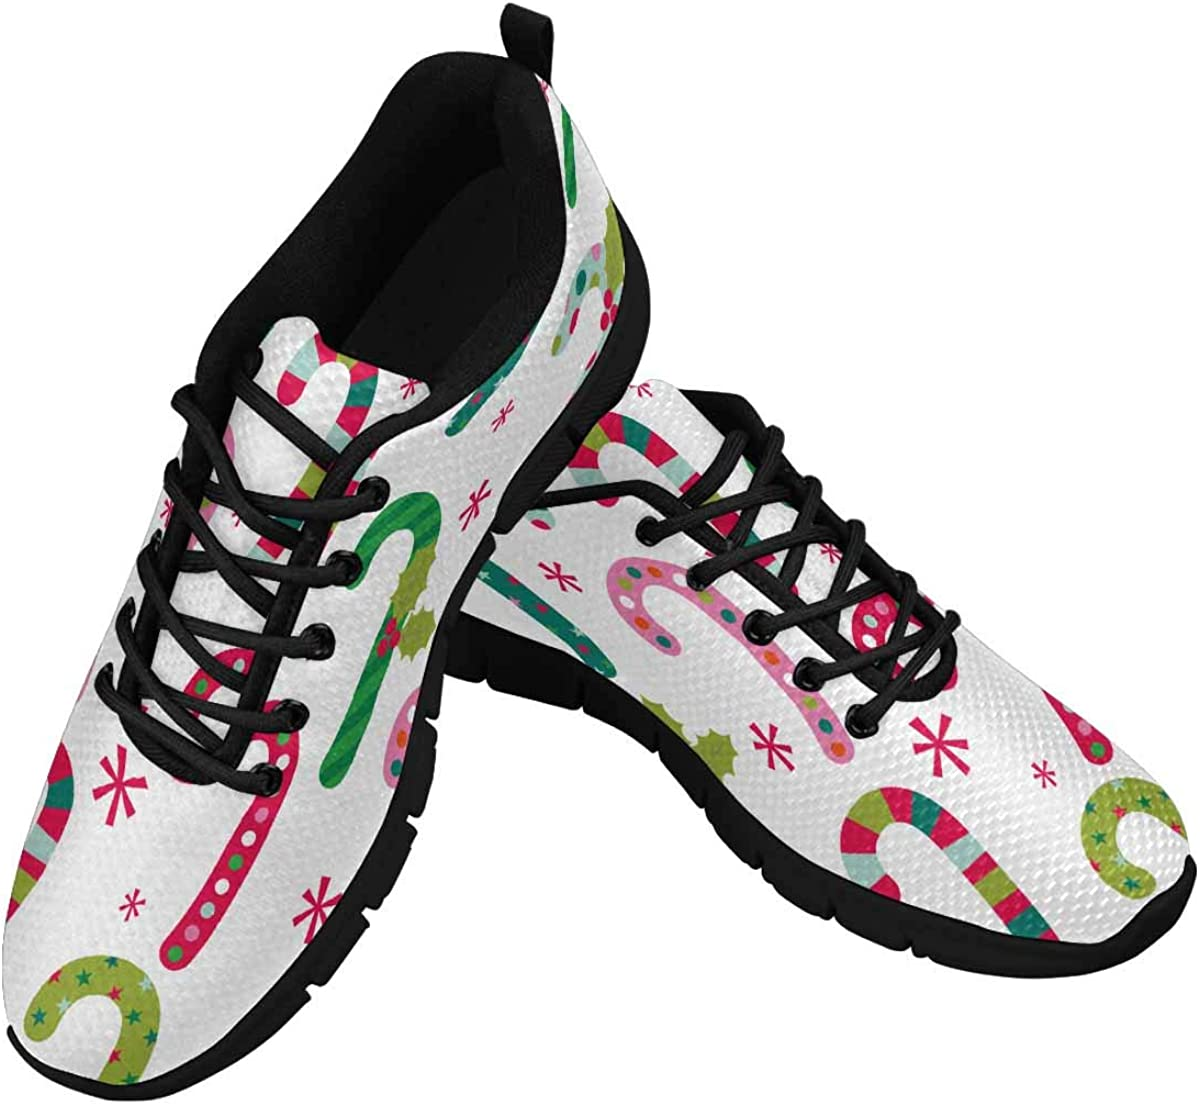 INTERESTPRINT Fun Christmas Candy Pattern Women's Lightweight Athletic Casual Gym Sneakers